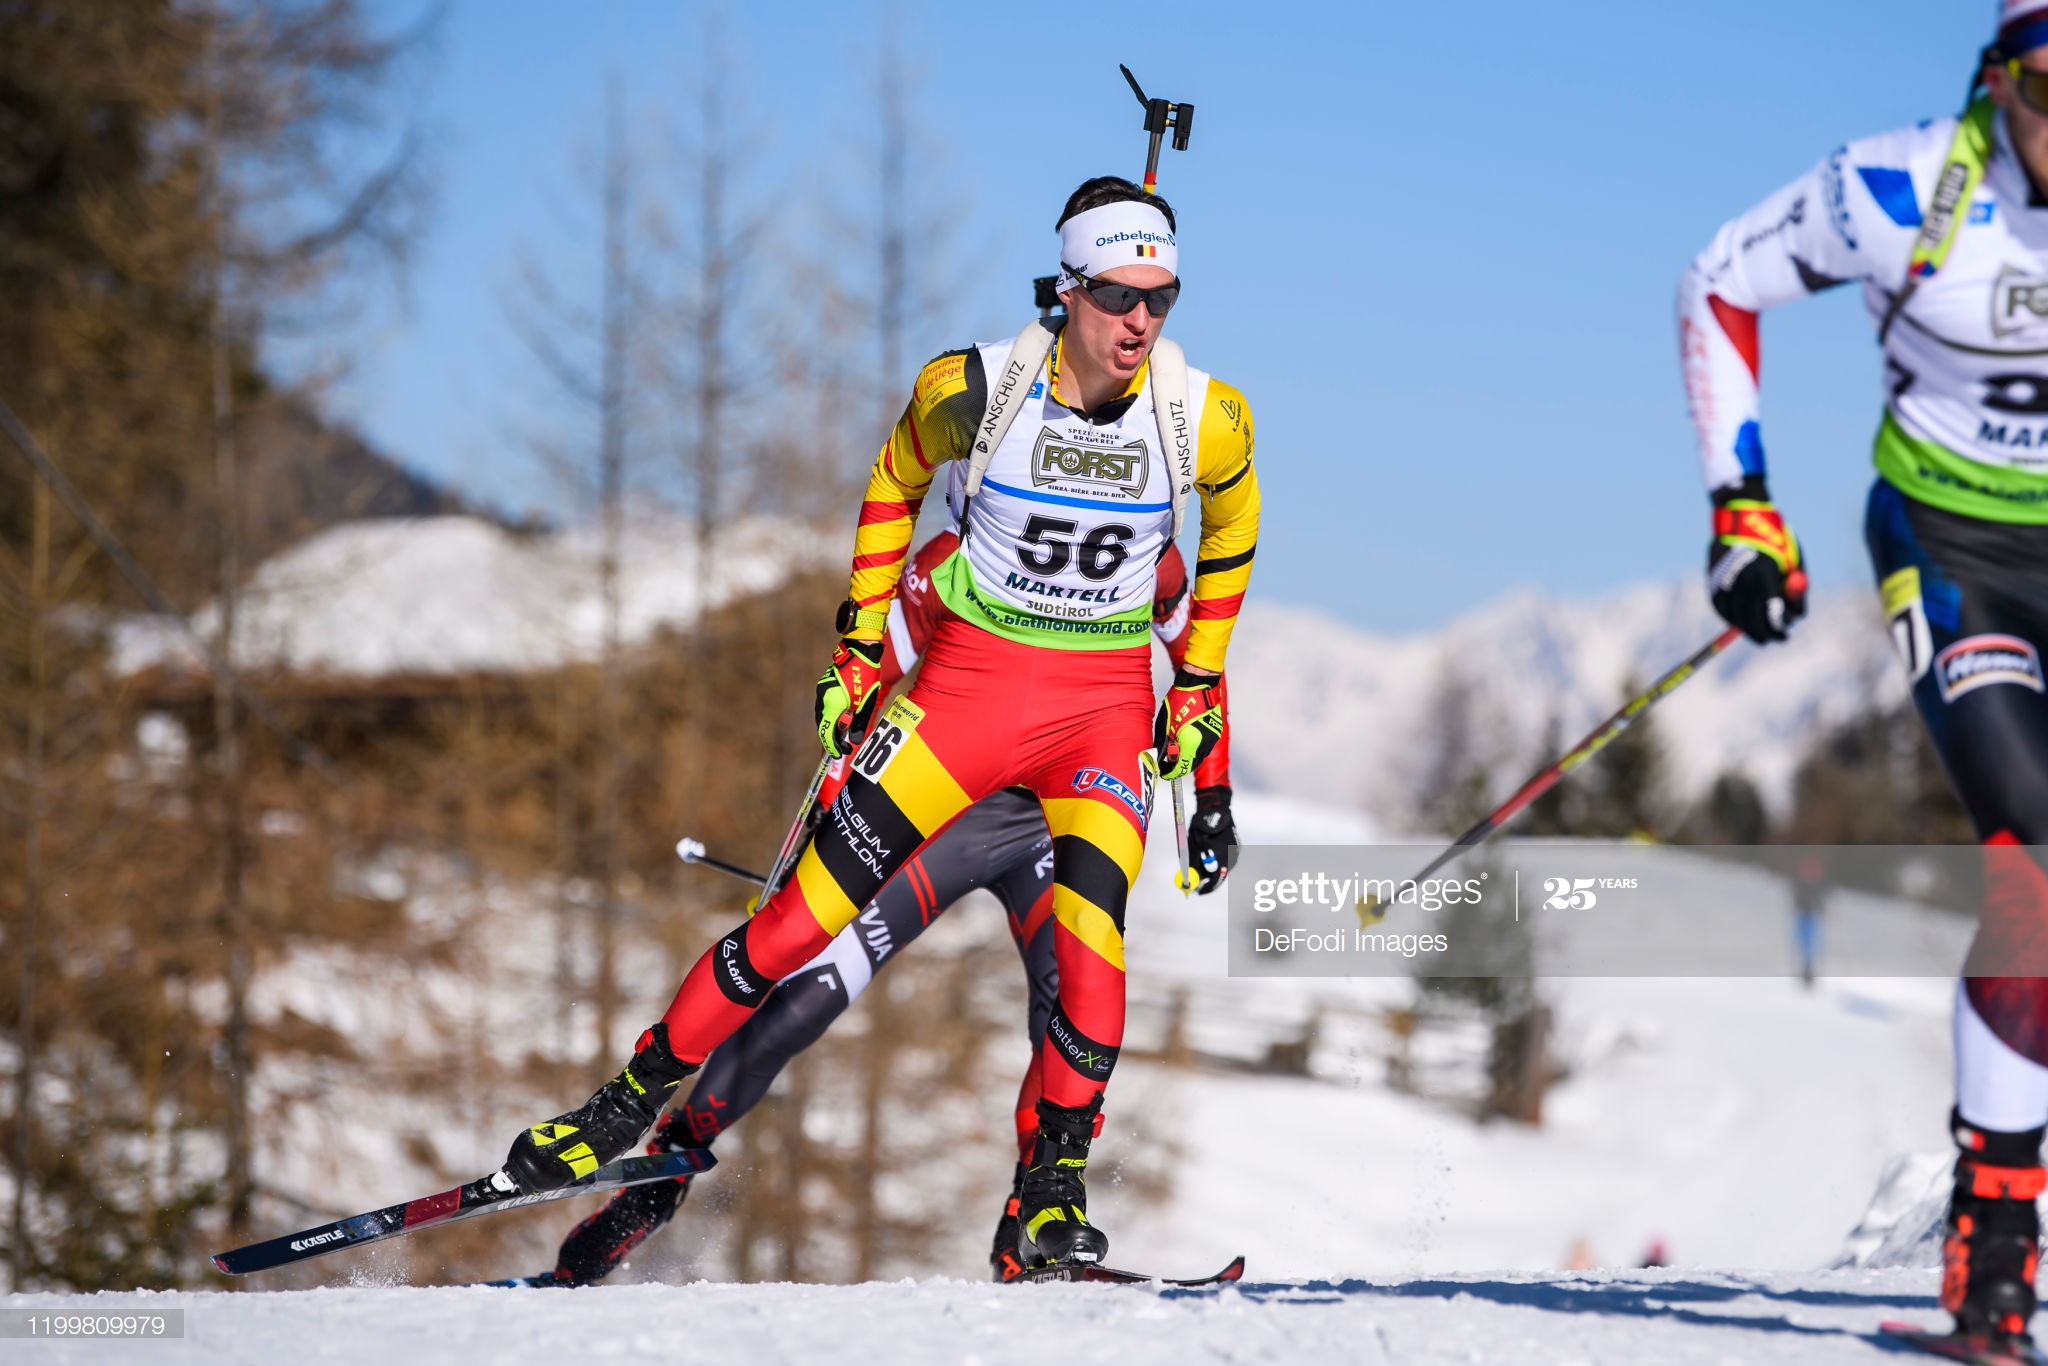 MARTELL-VAL MARTELLO, ITALY - FEBRUARY 09: (BILD ZEITUNG OUT) Pjotr Karel A Dielen of Belgium in action competes during the Men 15 km Mass Start 60 of the IBU Cup Biathlon Martell-Val Martello on February 9, 2020 in Martell-Val Martello, Italy. (Photo by Kevin Voigt/DeFodi Images via Getty Images)